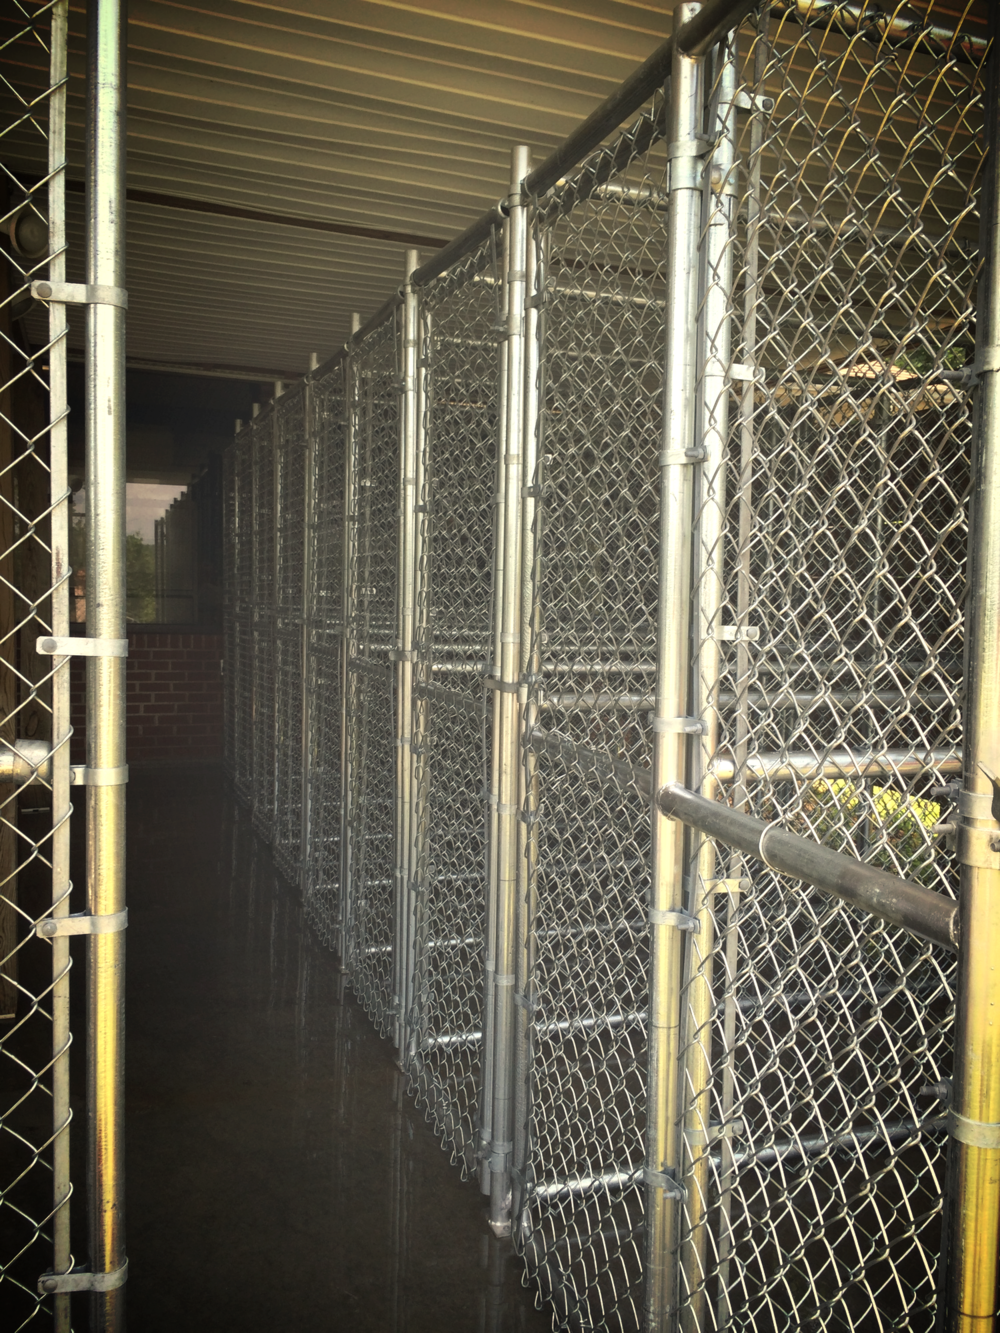 Chain Link Fence Kennels @ Riverside Veterinary Hospital in Bedford